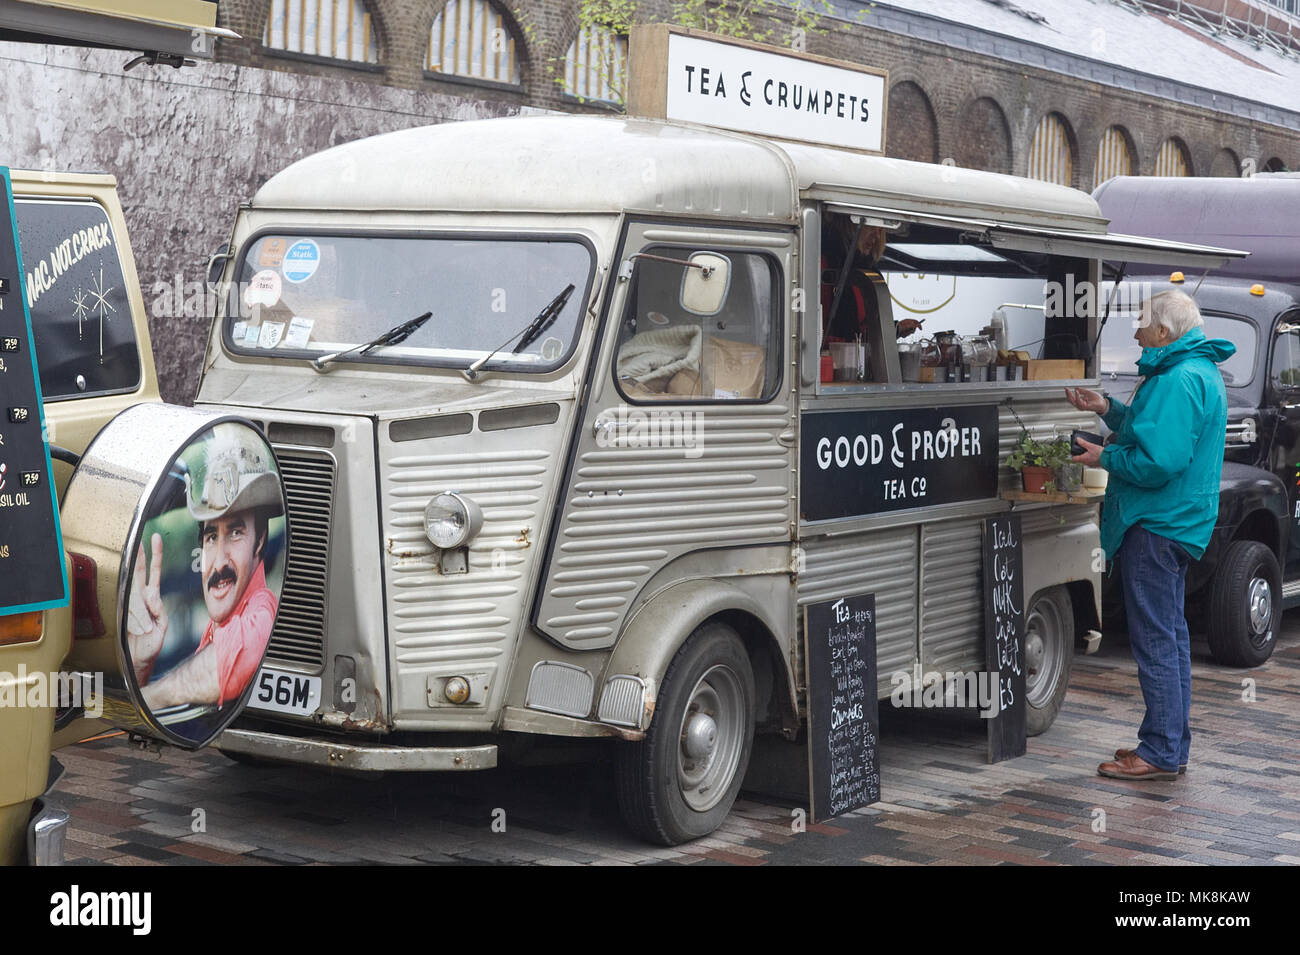 classic vintage car boot, London - Stock Image